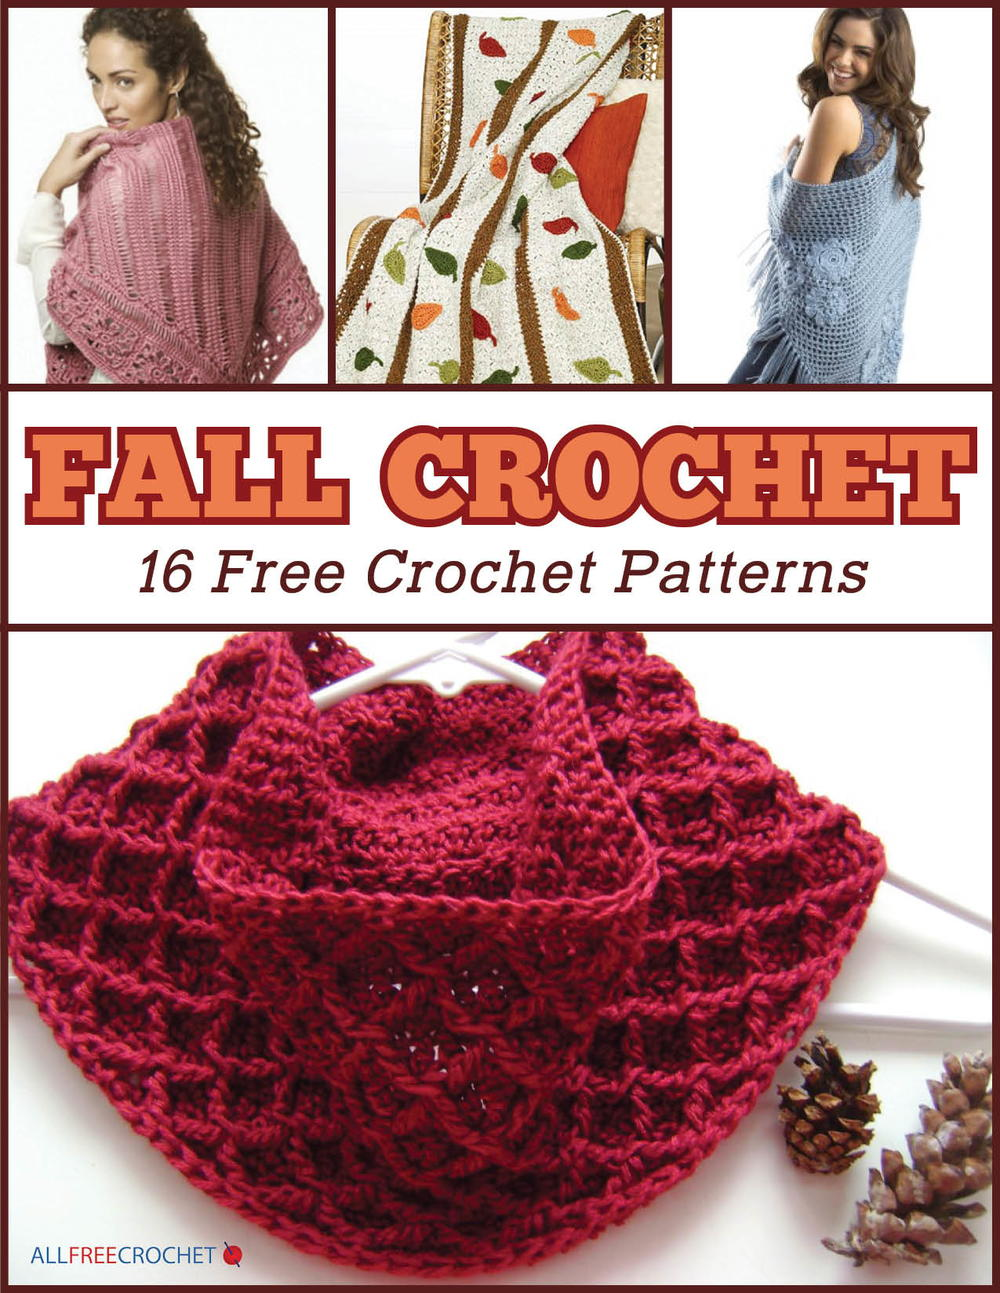 62 crochet poncho patterns allfreecrochet fall crochet 16 free crochet patterns ebook bankloansurffo Choice Image